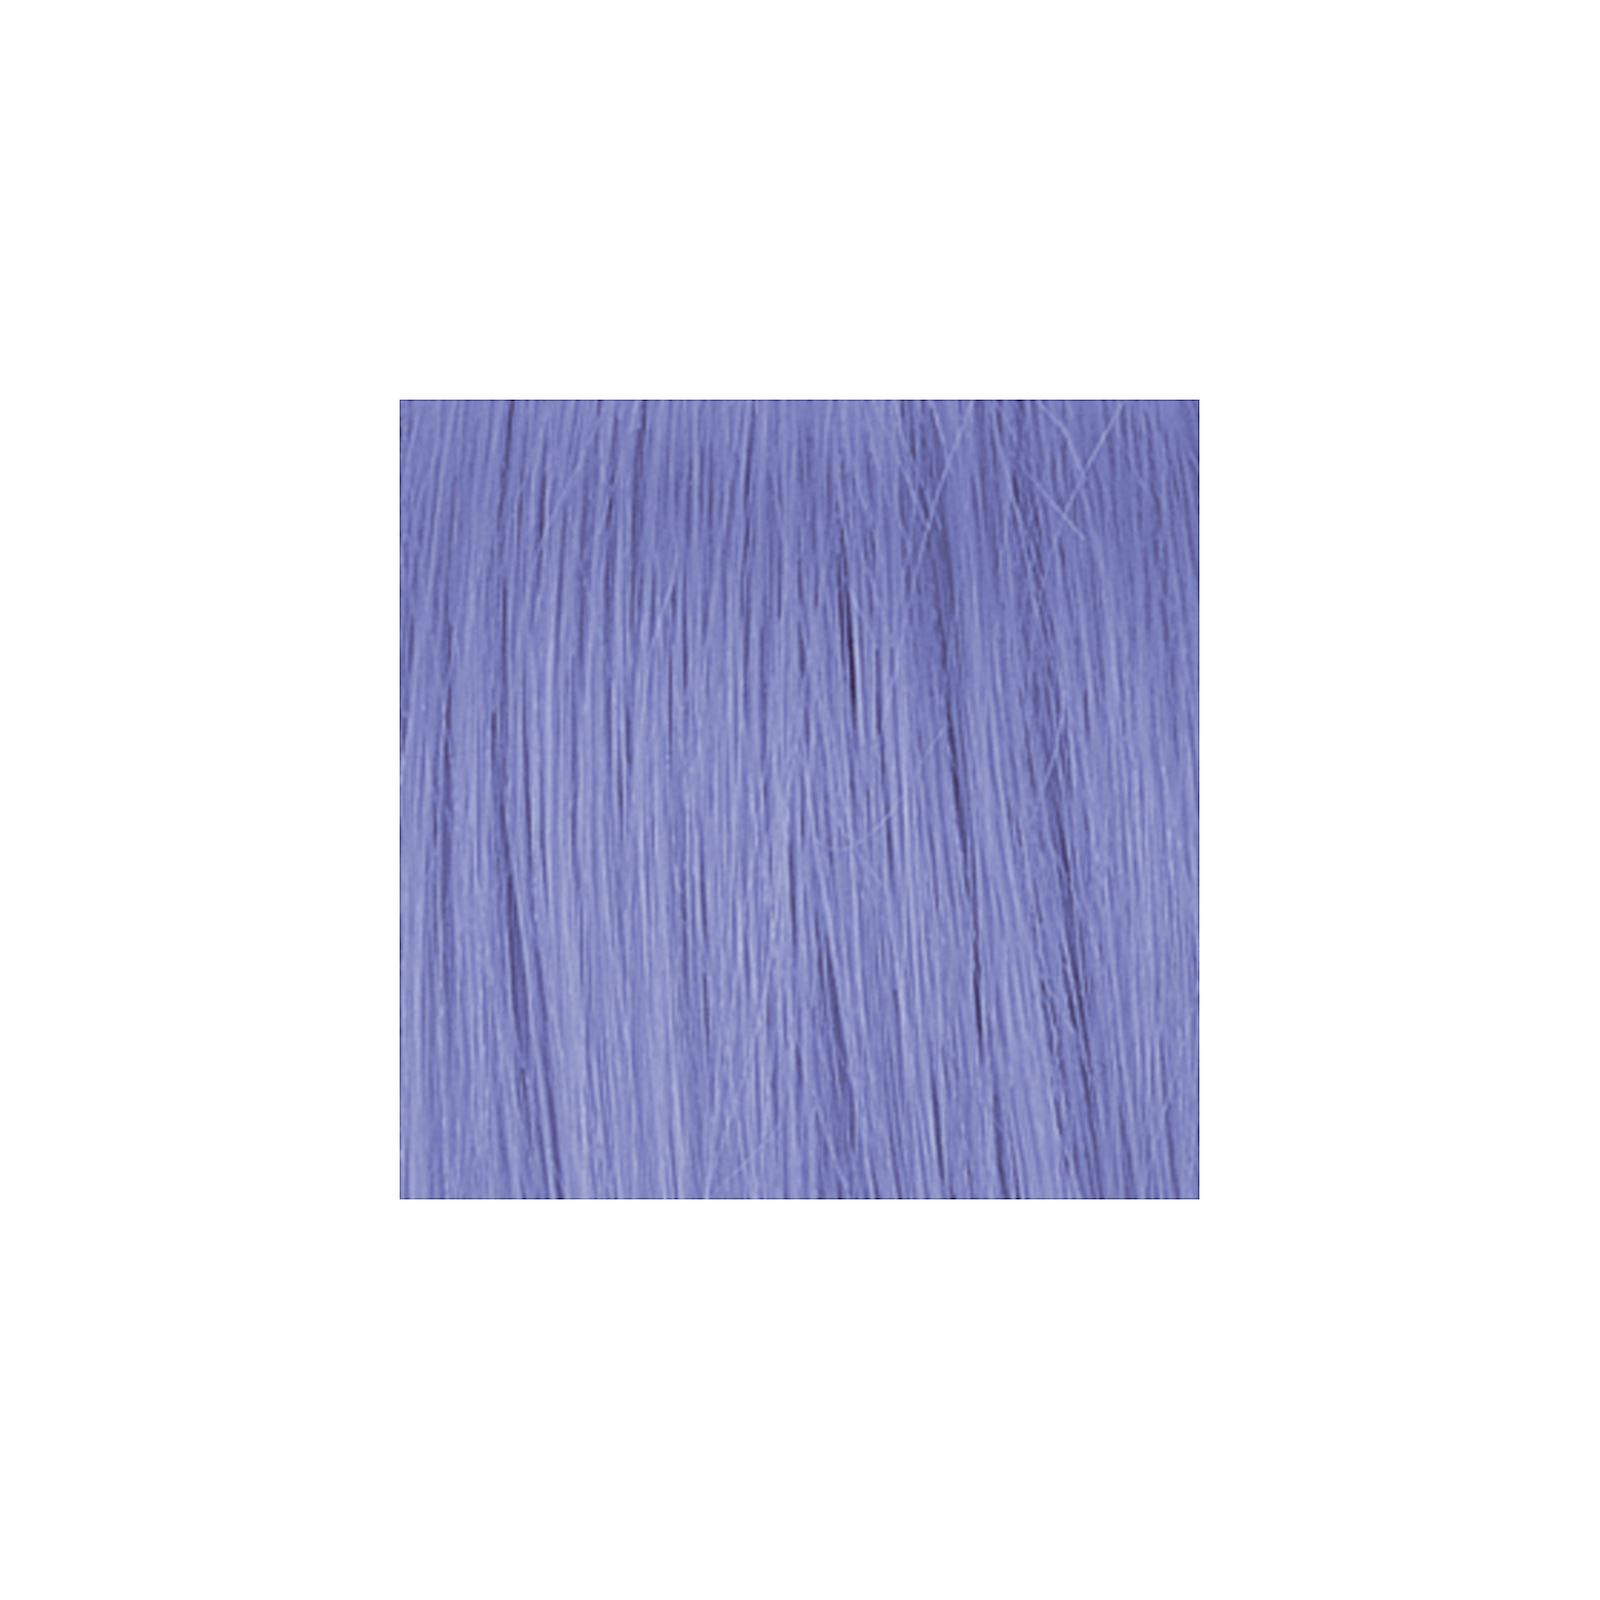 Stargazer Hair Dye -  Purple X 2 With Tint Brush